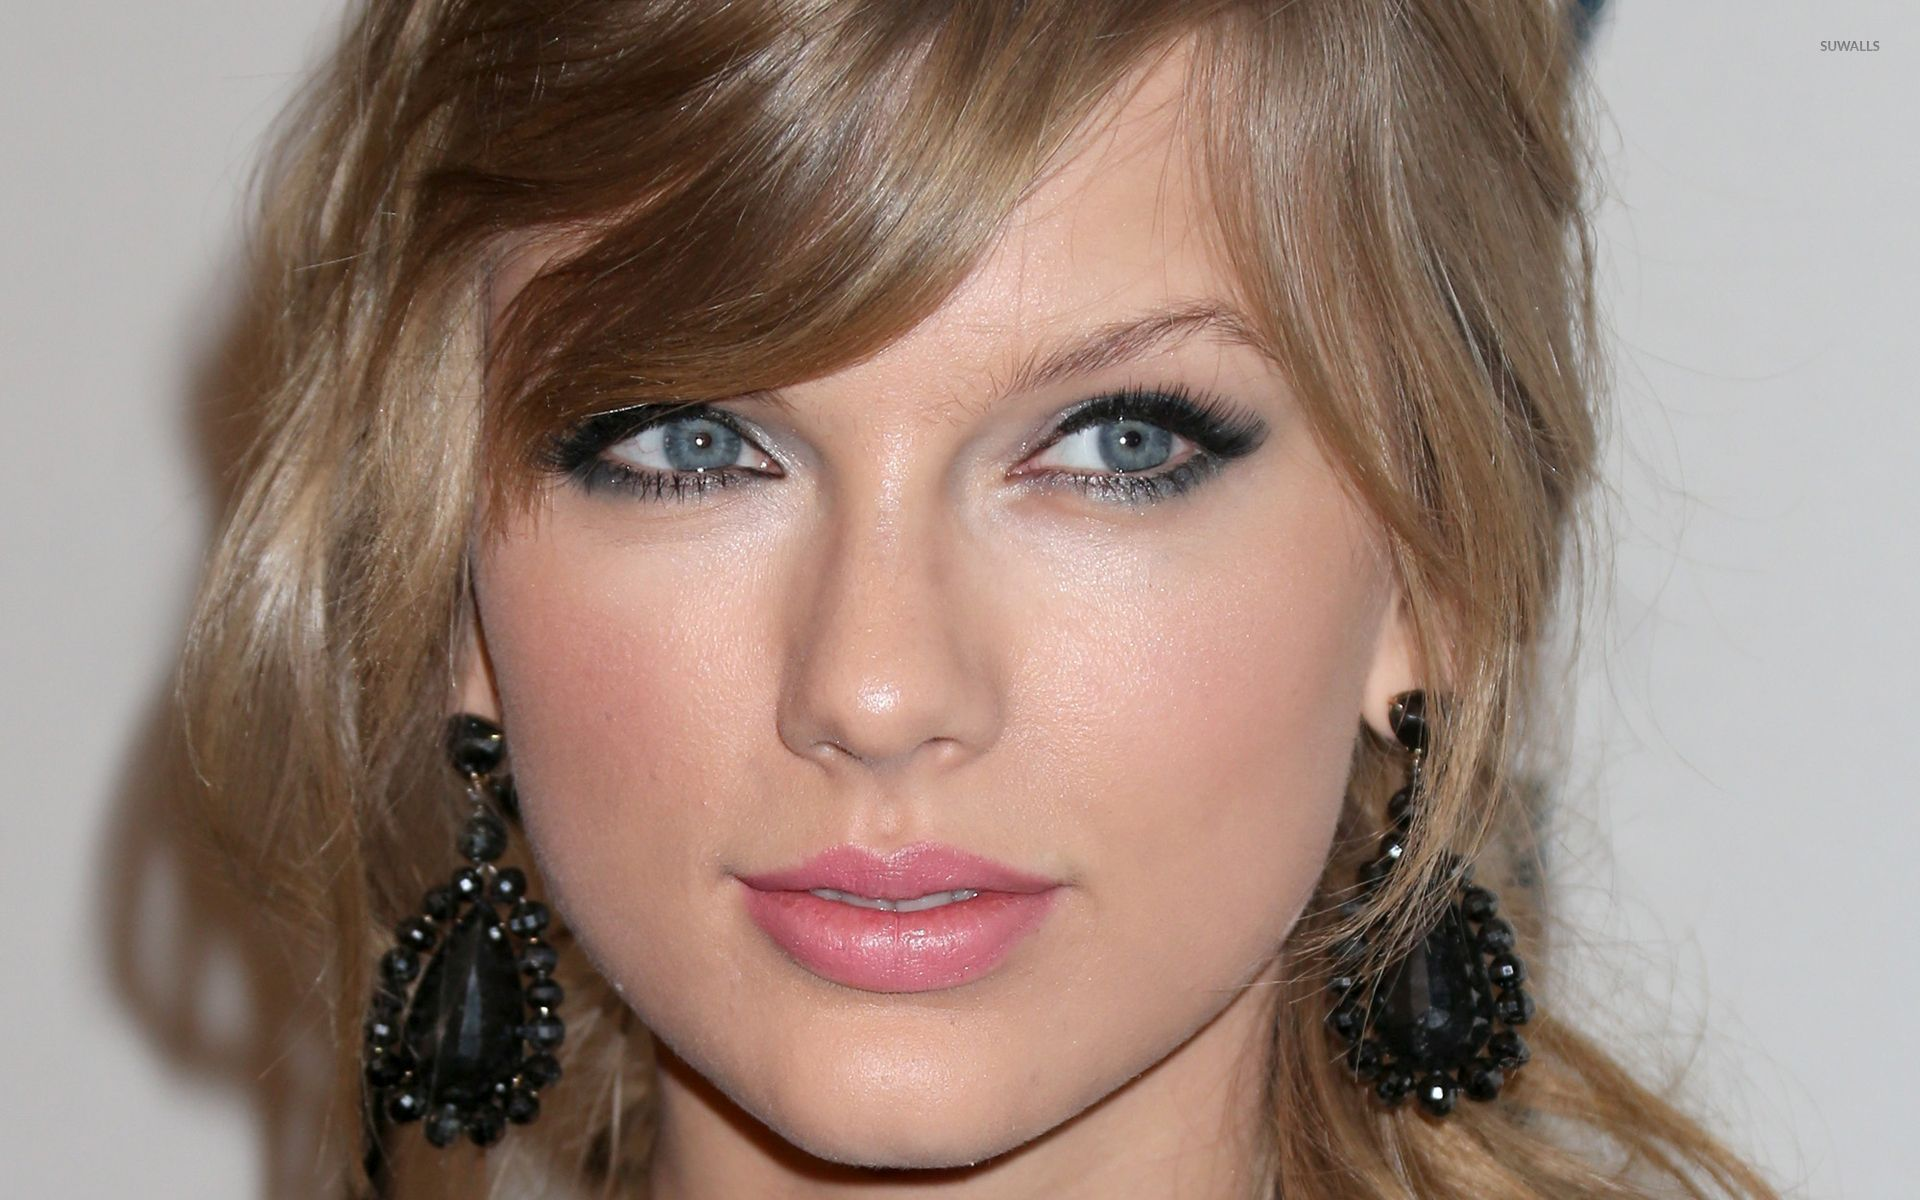 Taylor Swift 1989 Quotes Wallpaper Taylor Swift With Black Earrings Wallpaper Celebrity